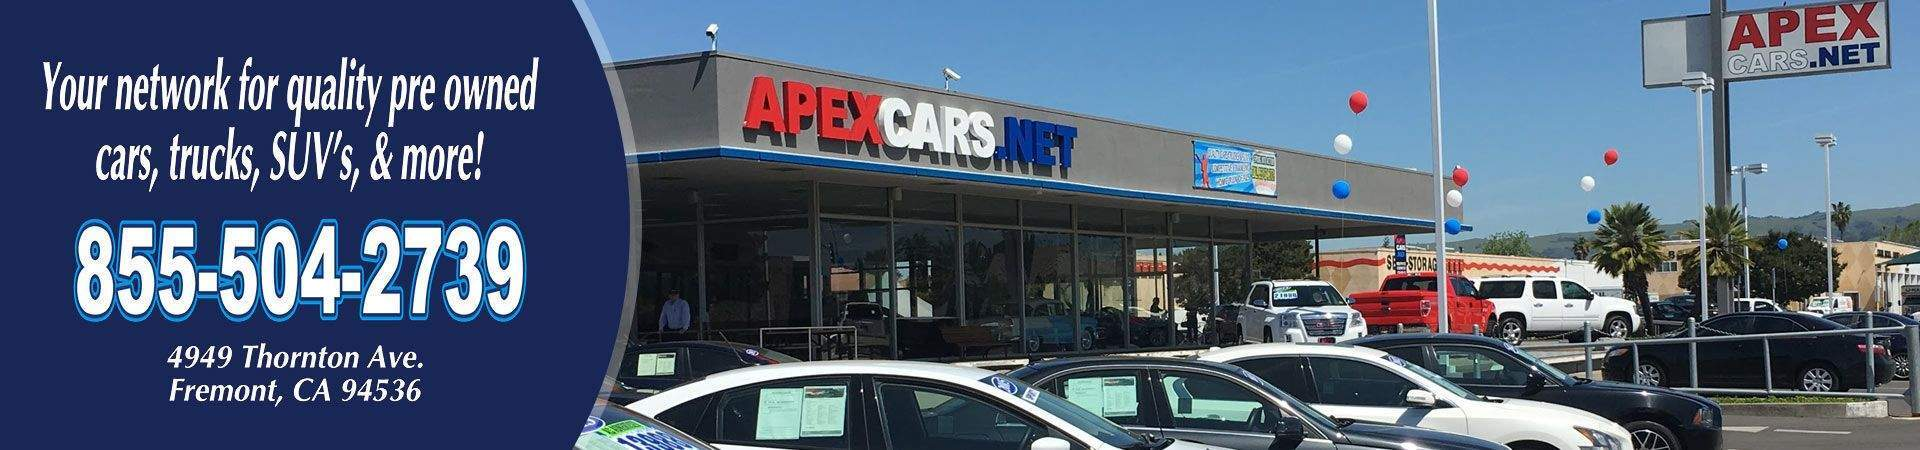 Used Vehicles in Fremont, CA